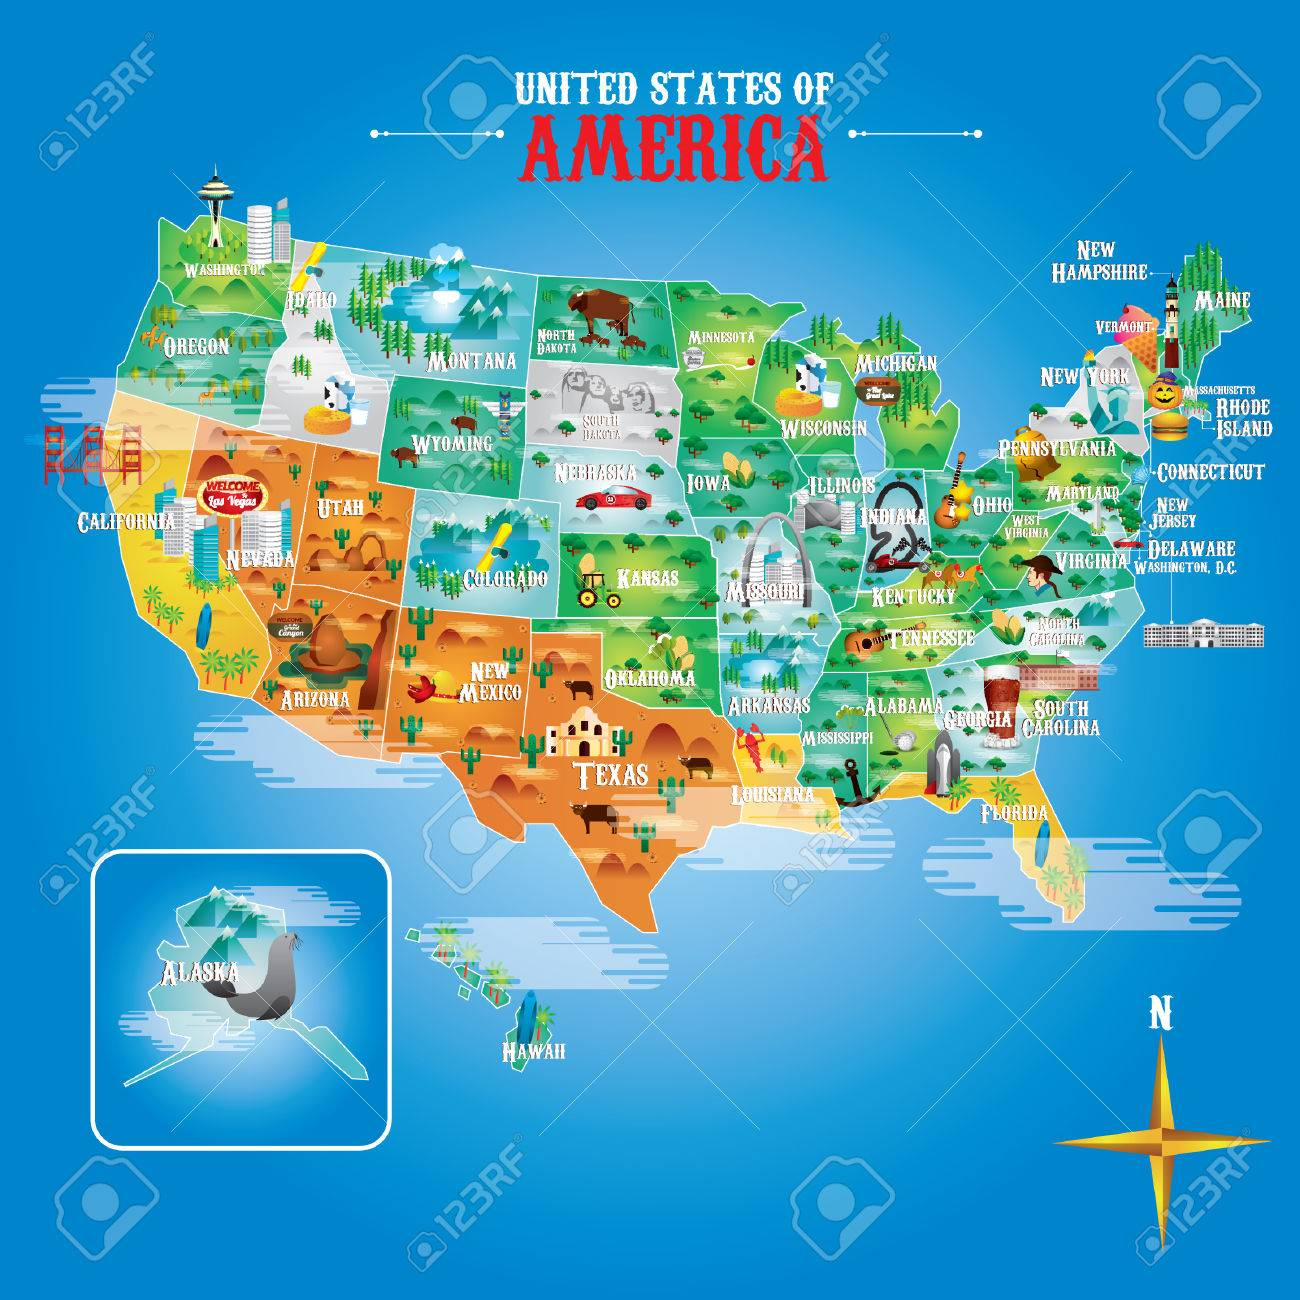 Fifty States Of America With Famous Landmarks Royalty Free Cliparts